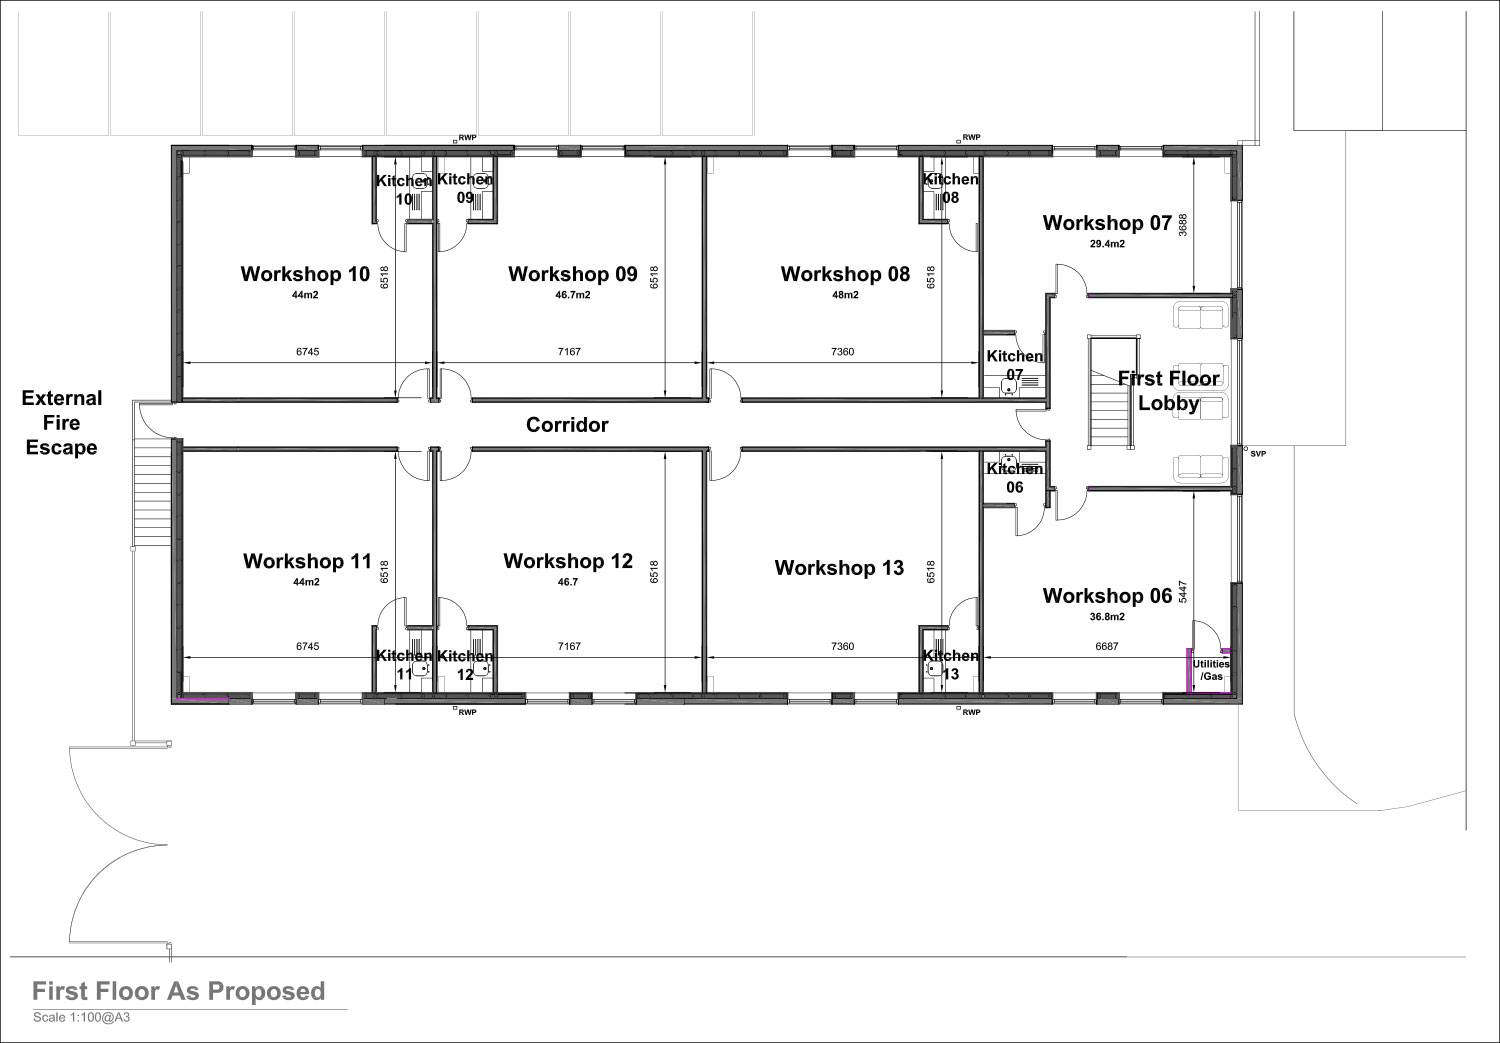 First Floor Plans - Steelbox Works